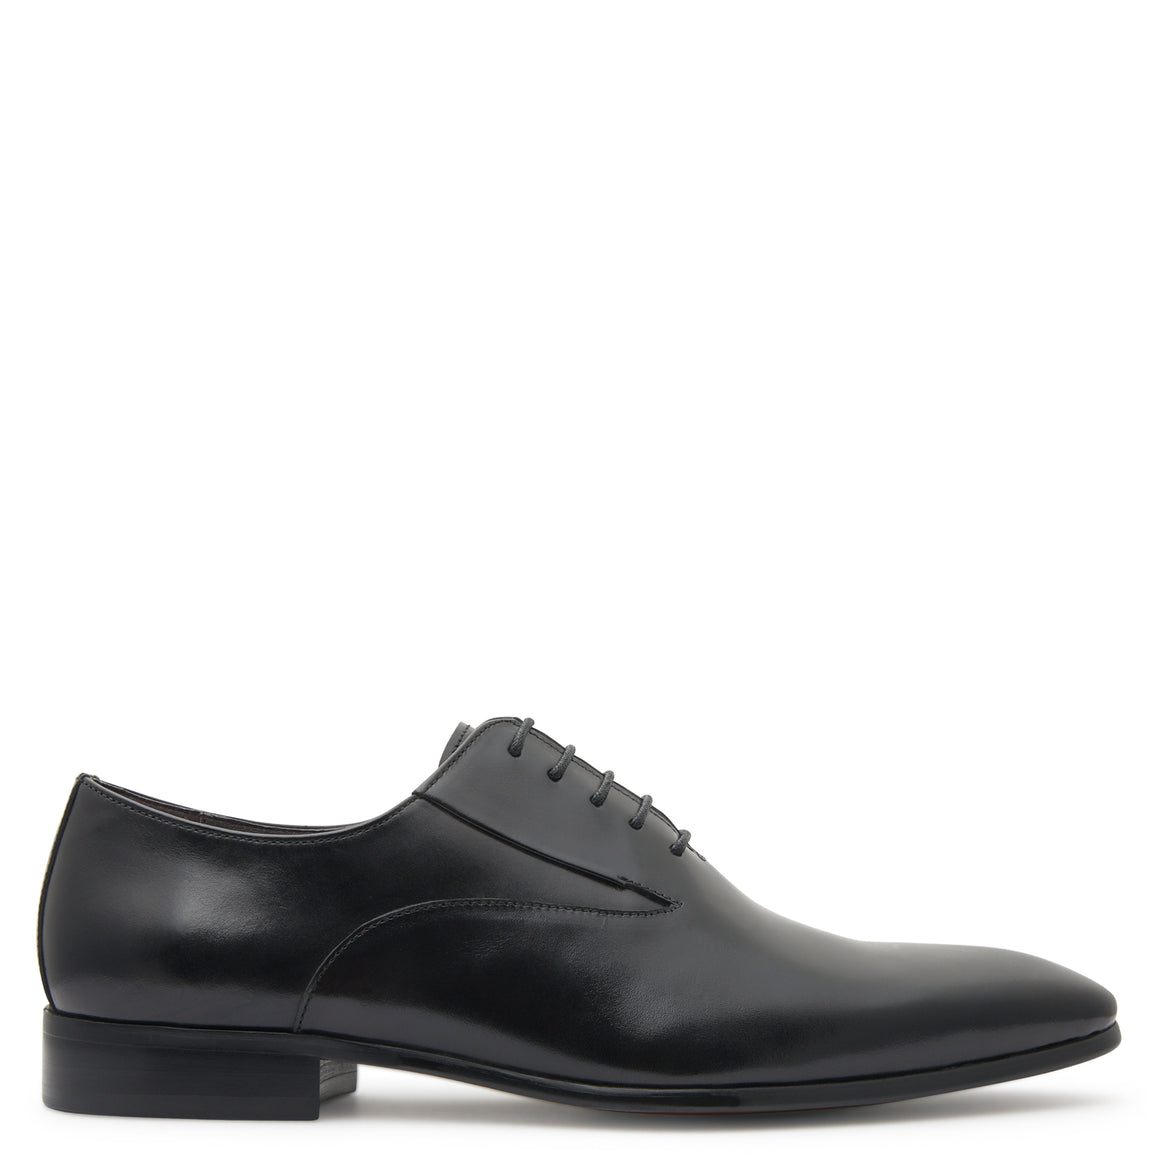 Siero Black Oxford Shoes